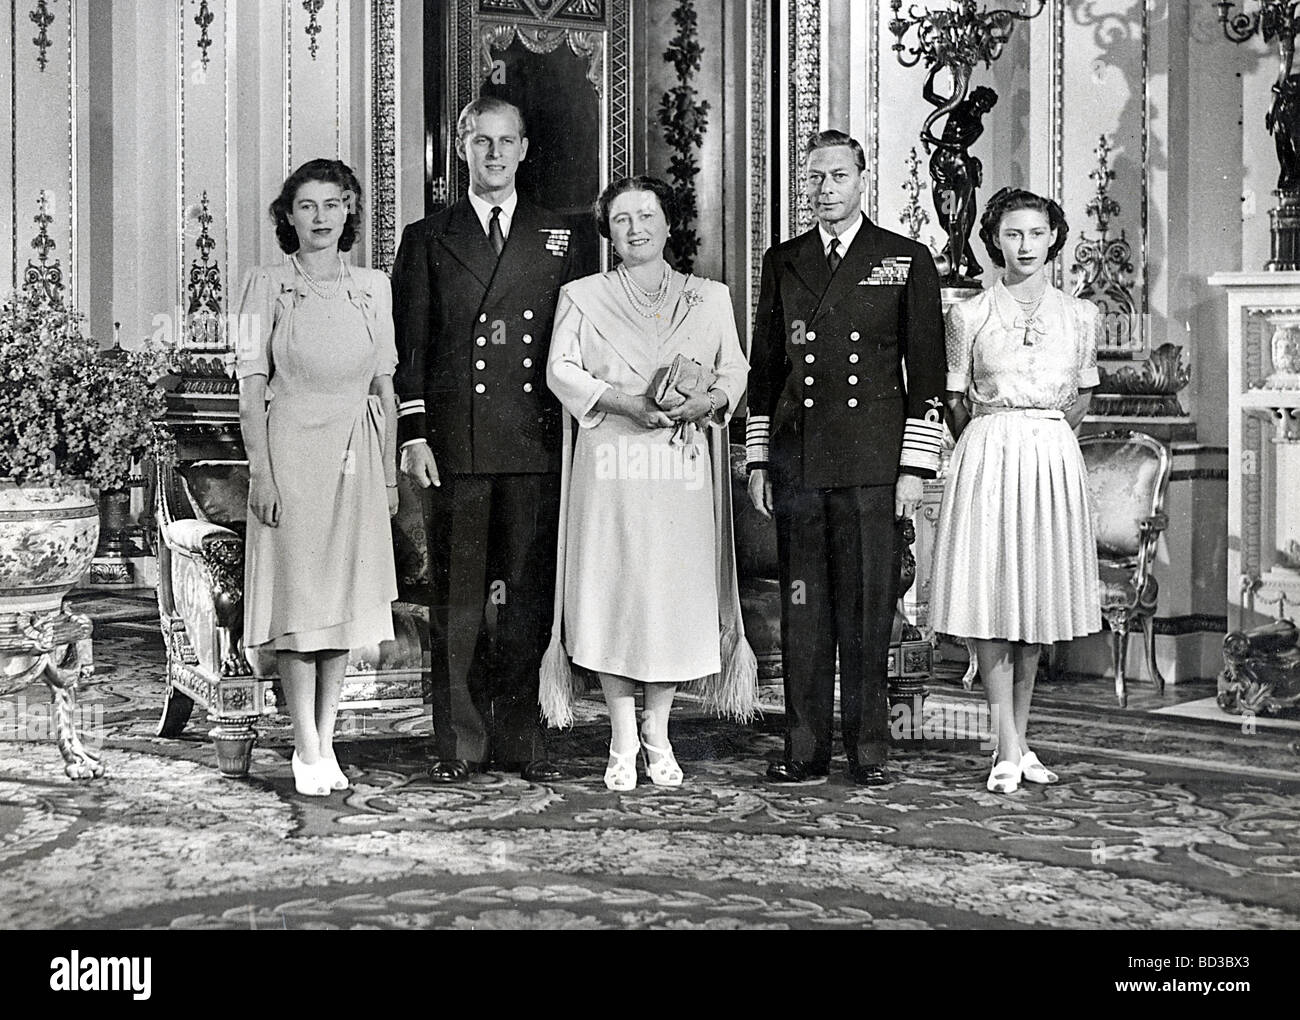 PRINCESS ELIZABETH ENGAGEMENT 1947 From left: Princess Elizabeth, Prince  Philip, Queen Mother, King George VI, Princess Margaret